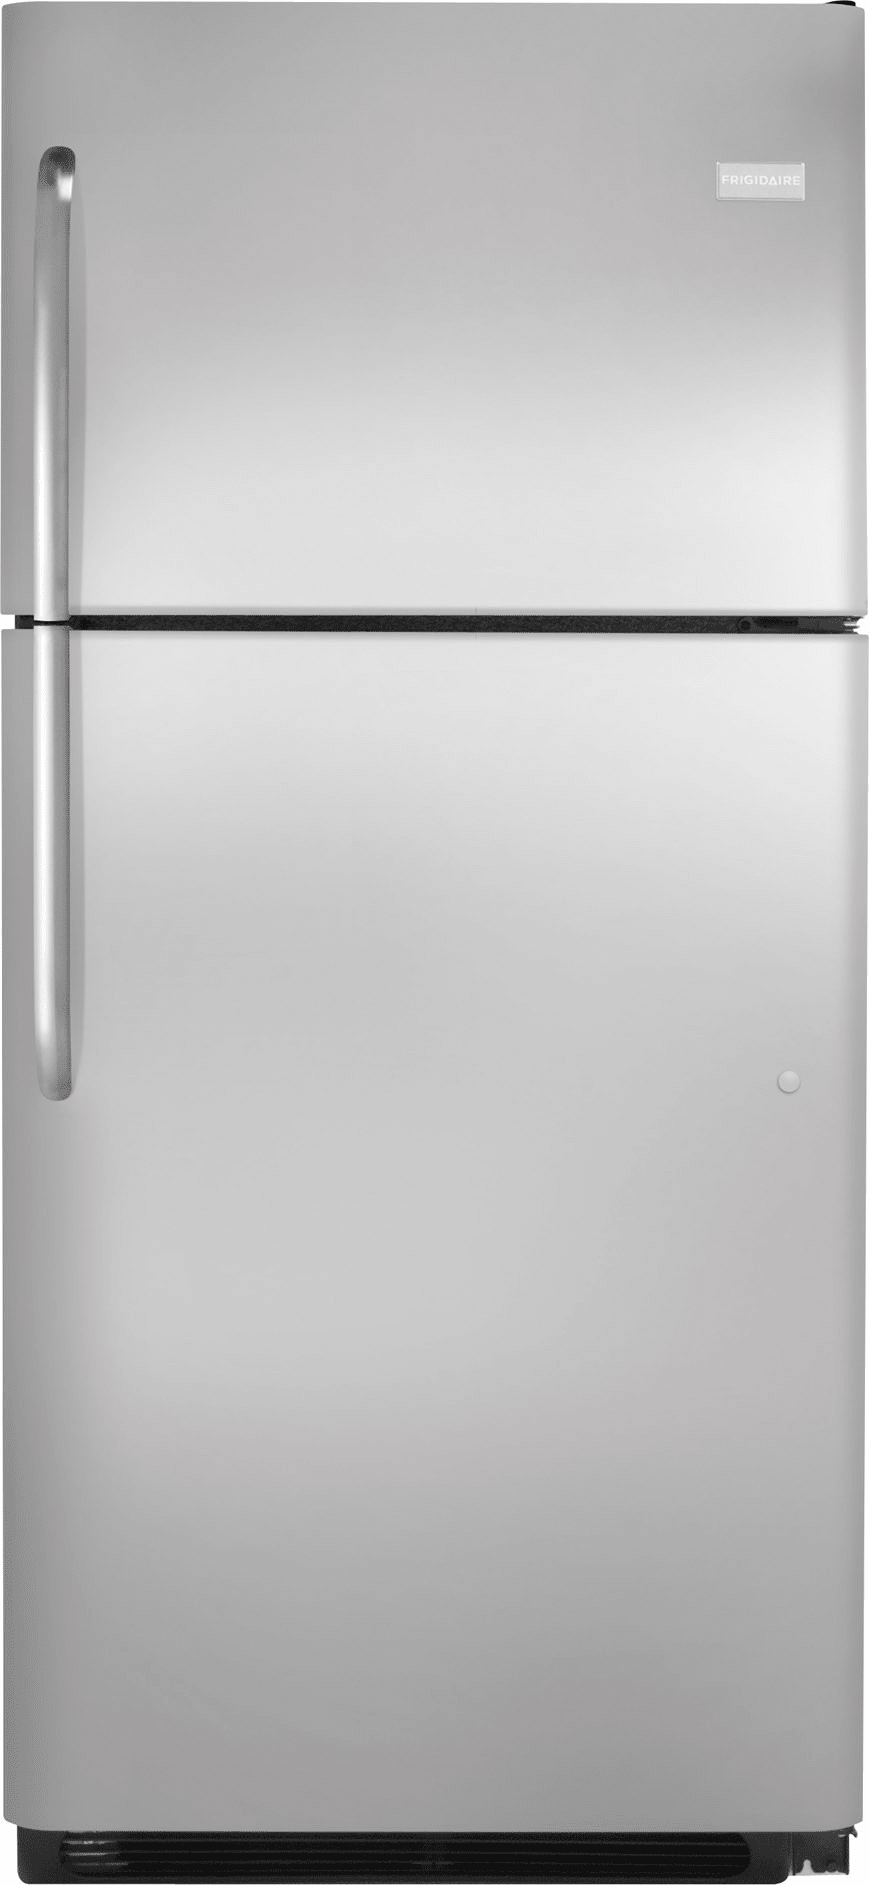 frigidaire ffht2131qs 30 inch top freezer refrigerator. Black Bedroom Furniture Sets. Home Design Ideas